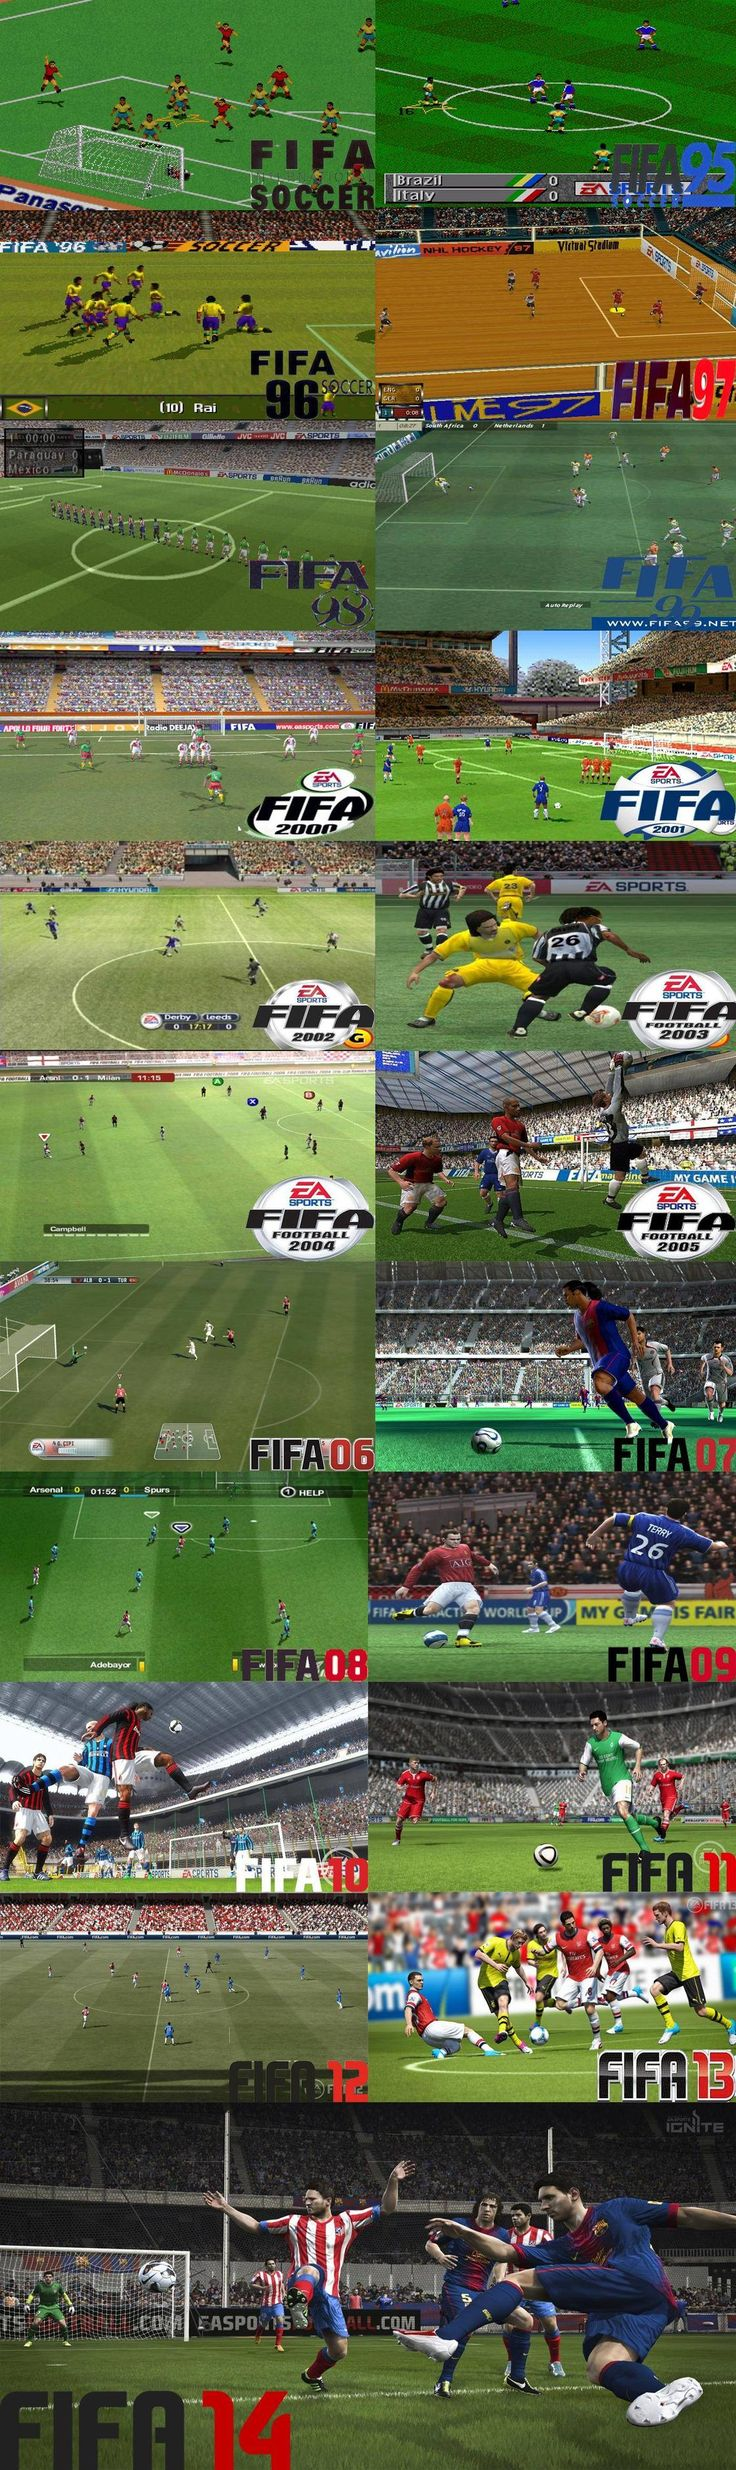 The evolution of Fifa (Soccer) Graphics! via Reddit user OcelotcR